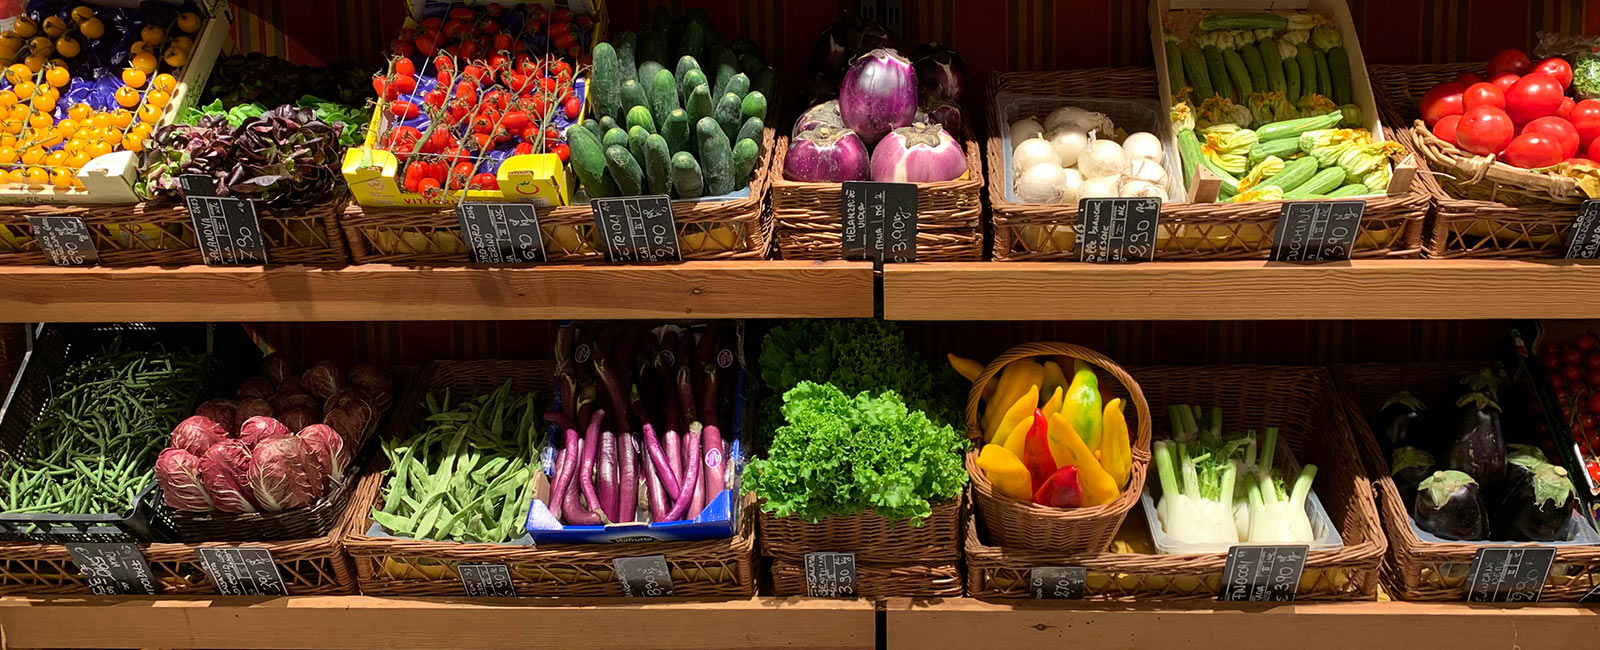 How Much are You Really Paying for Your Food?